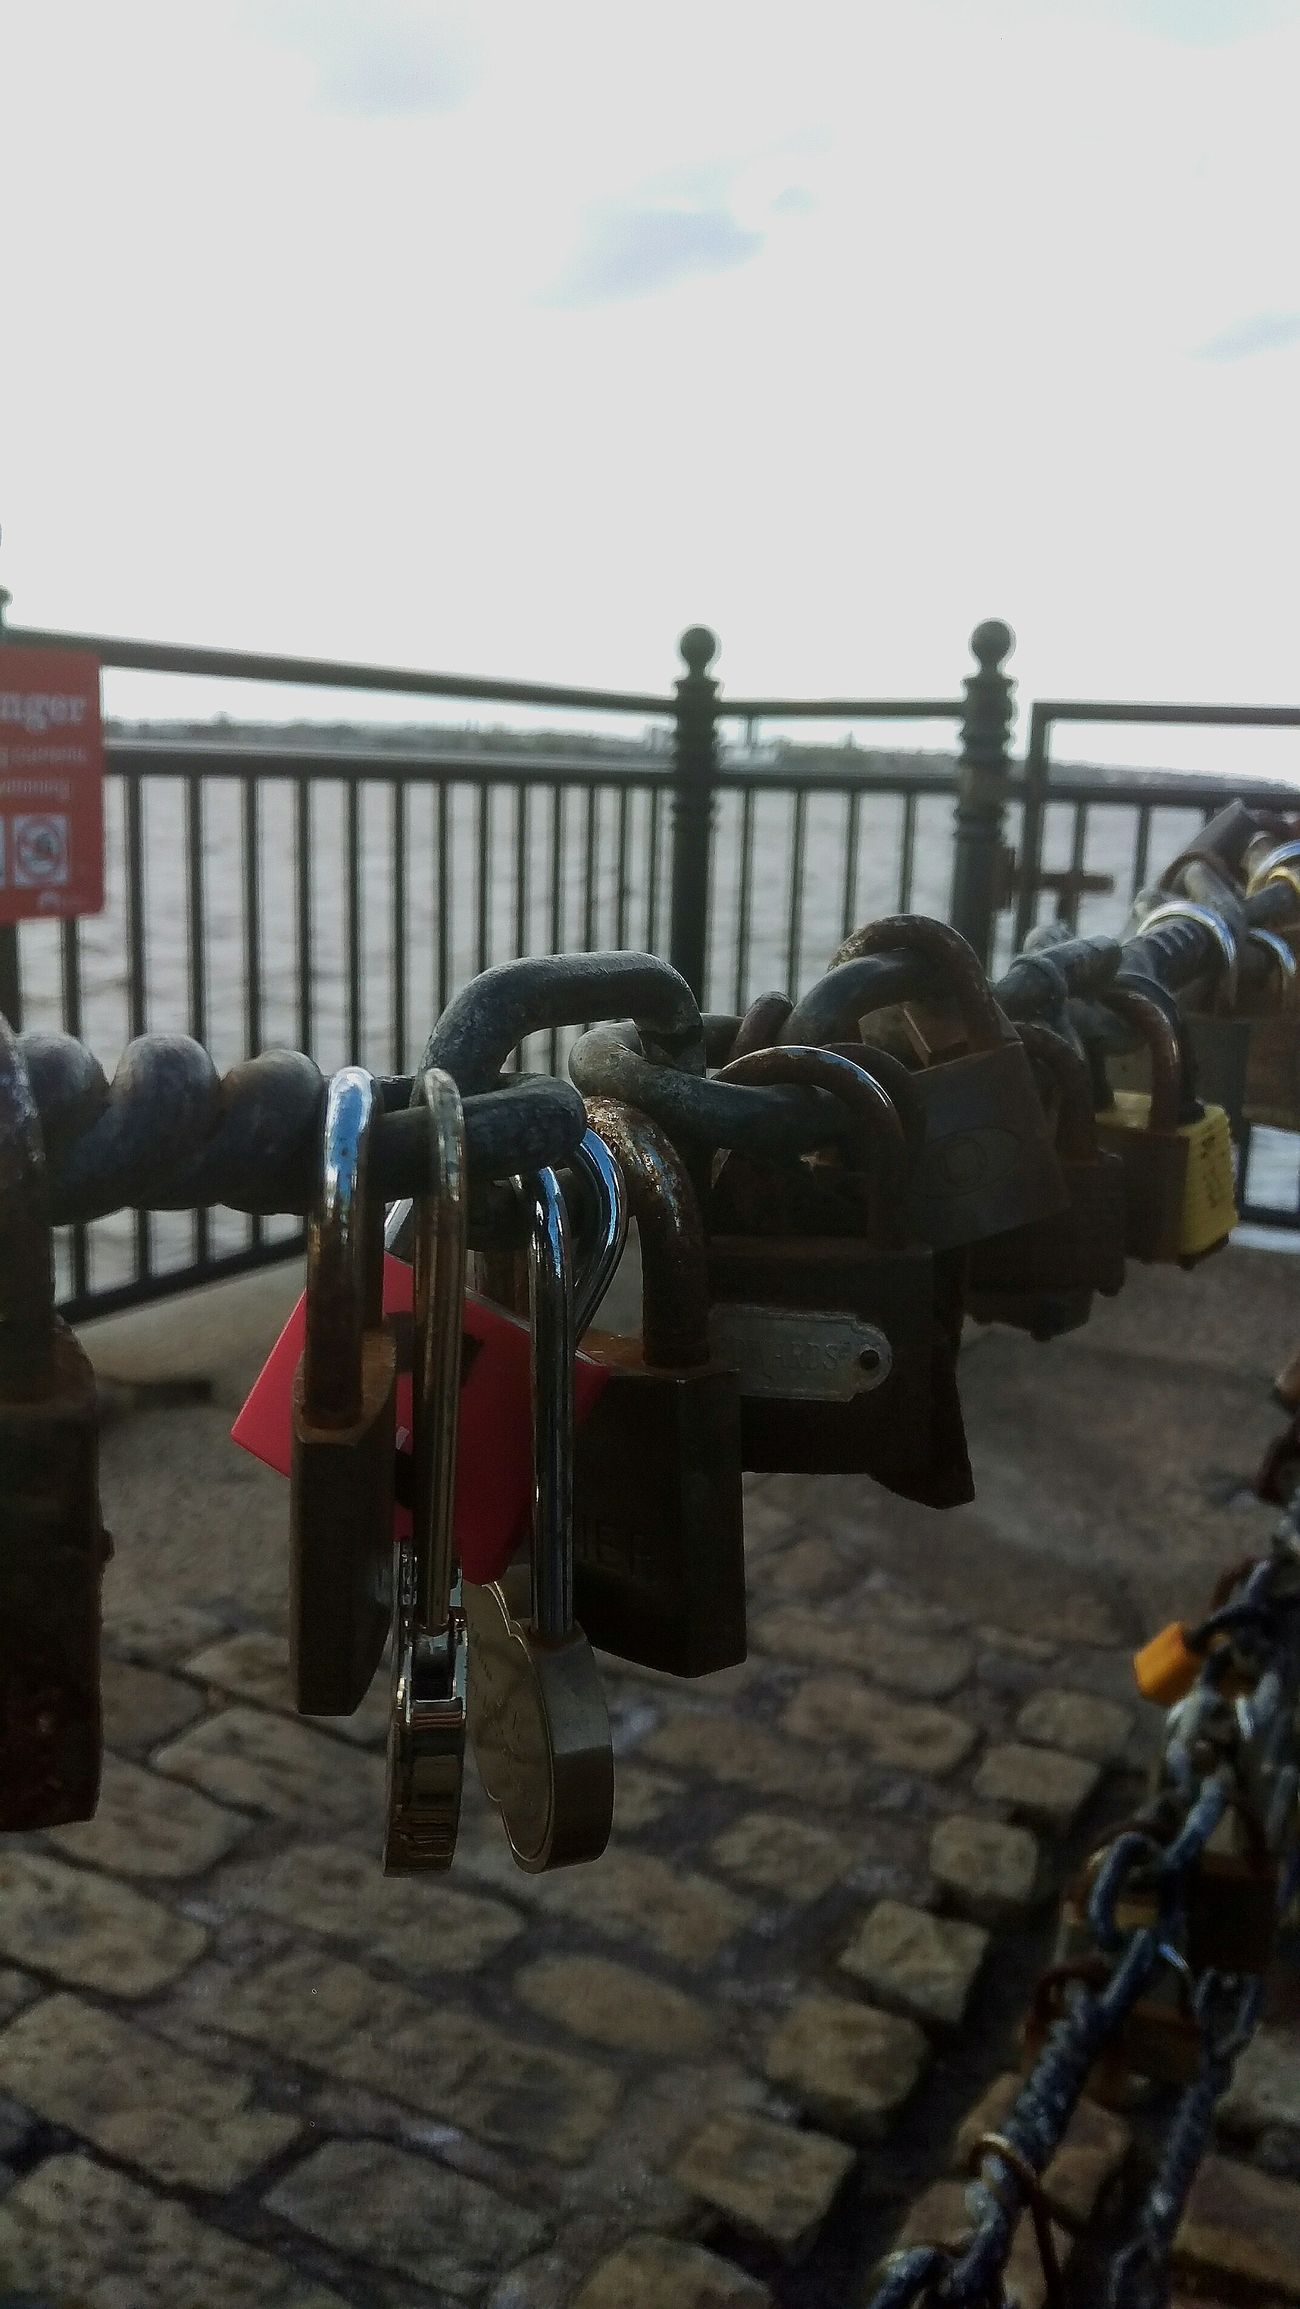 Protection Safety Padlock Water Love Lock Railing Lock Metal River Outdoors Hanging Sky Close-up City Day Bridge - Man Made Structure No People